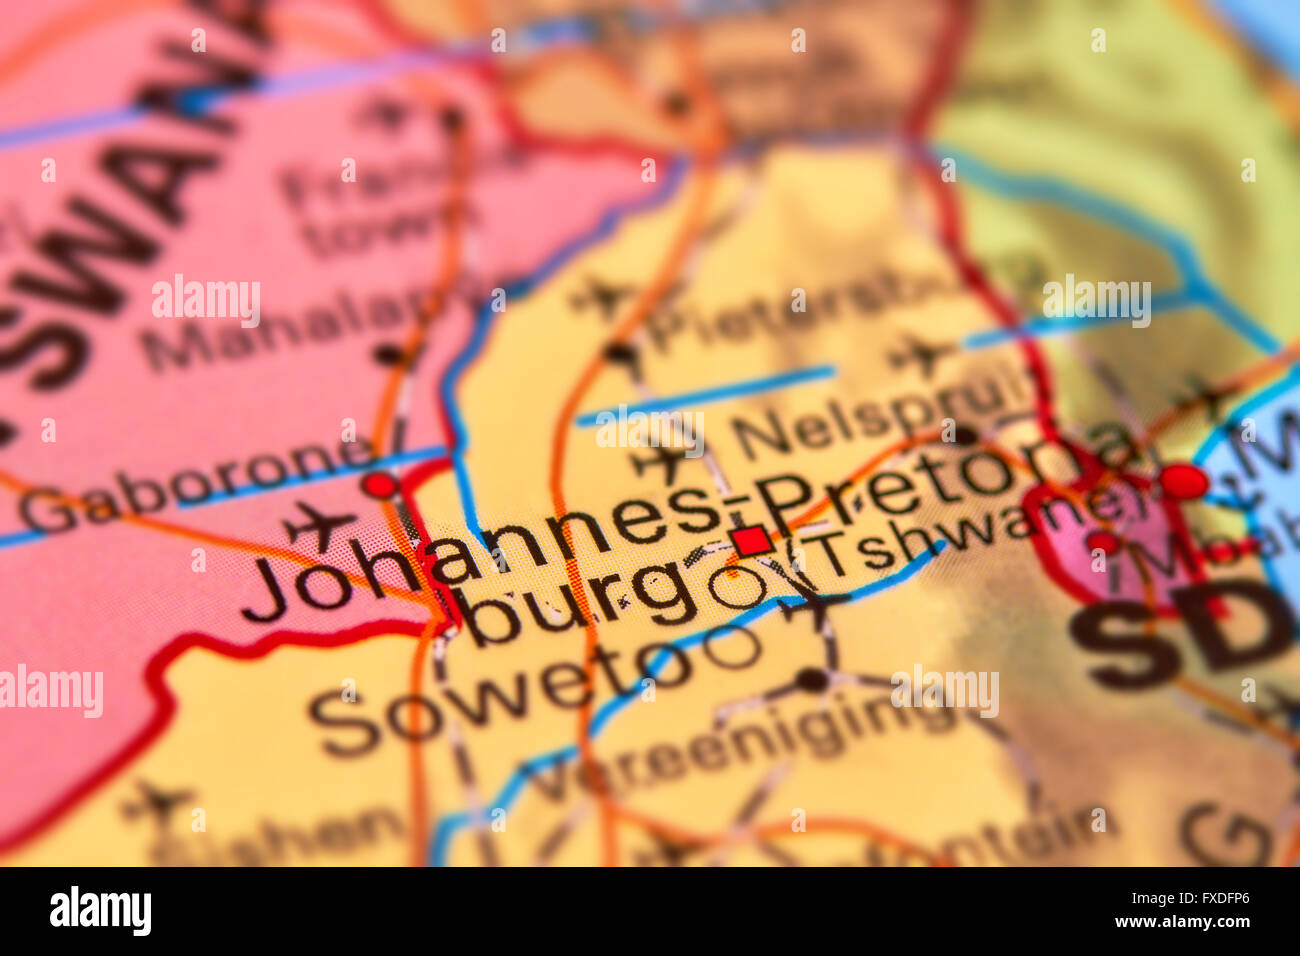 Johannesburg City in South Africa on the World Map - Stock Image